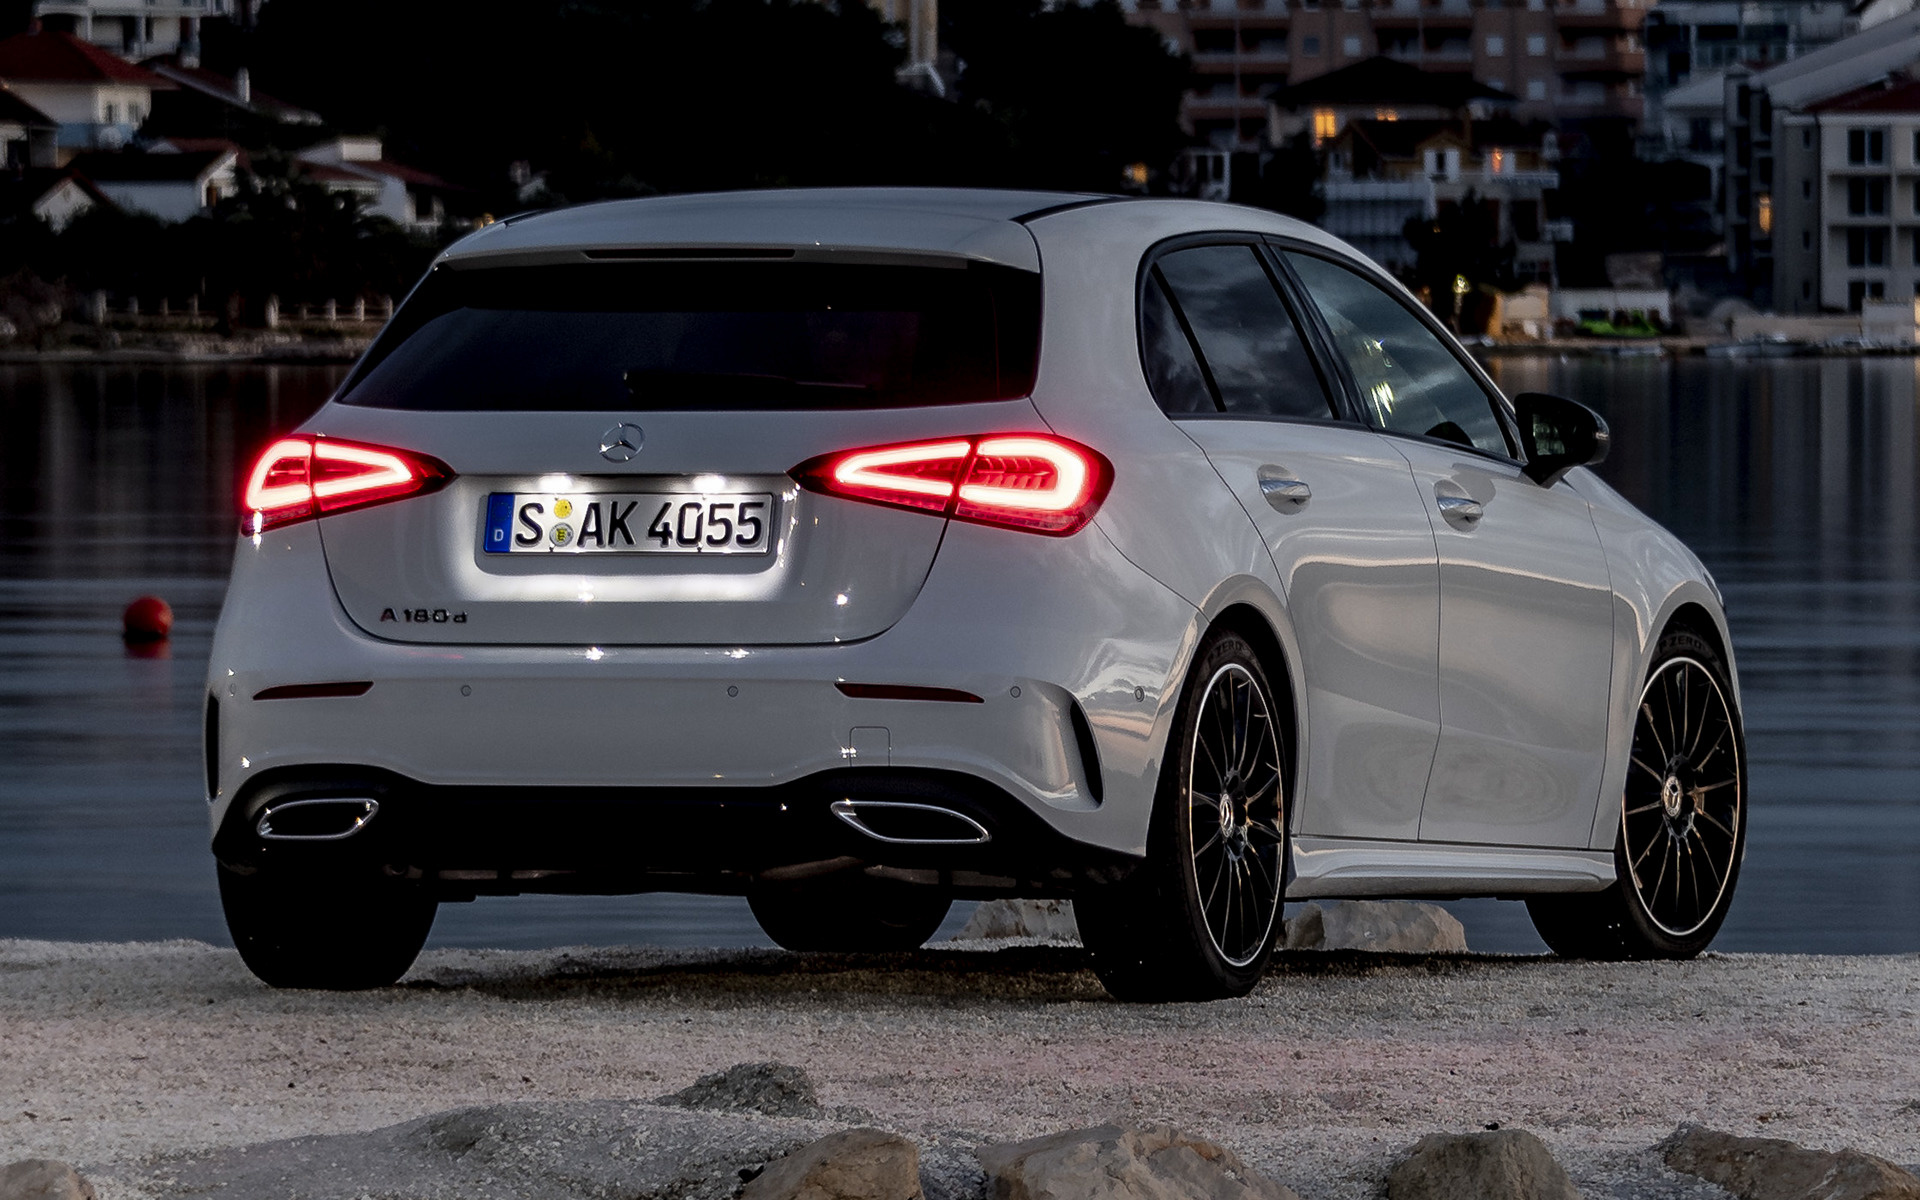 Mercedes Benz Amg >> 2018 Mercedes-Benz A-Class AMG Line - Wallpapers and HD ...